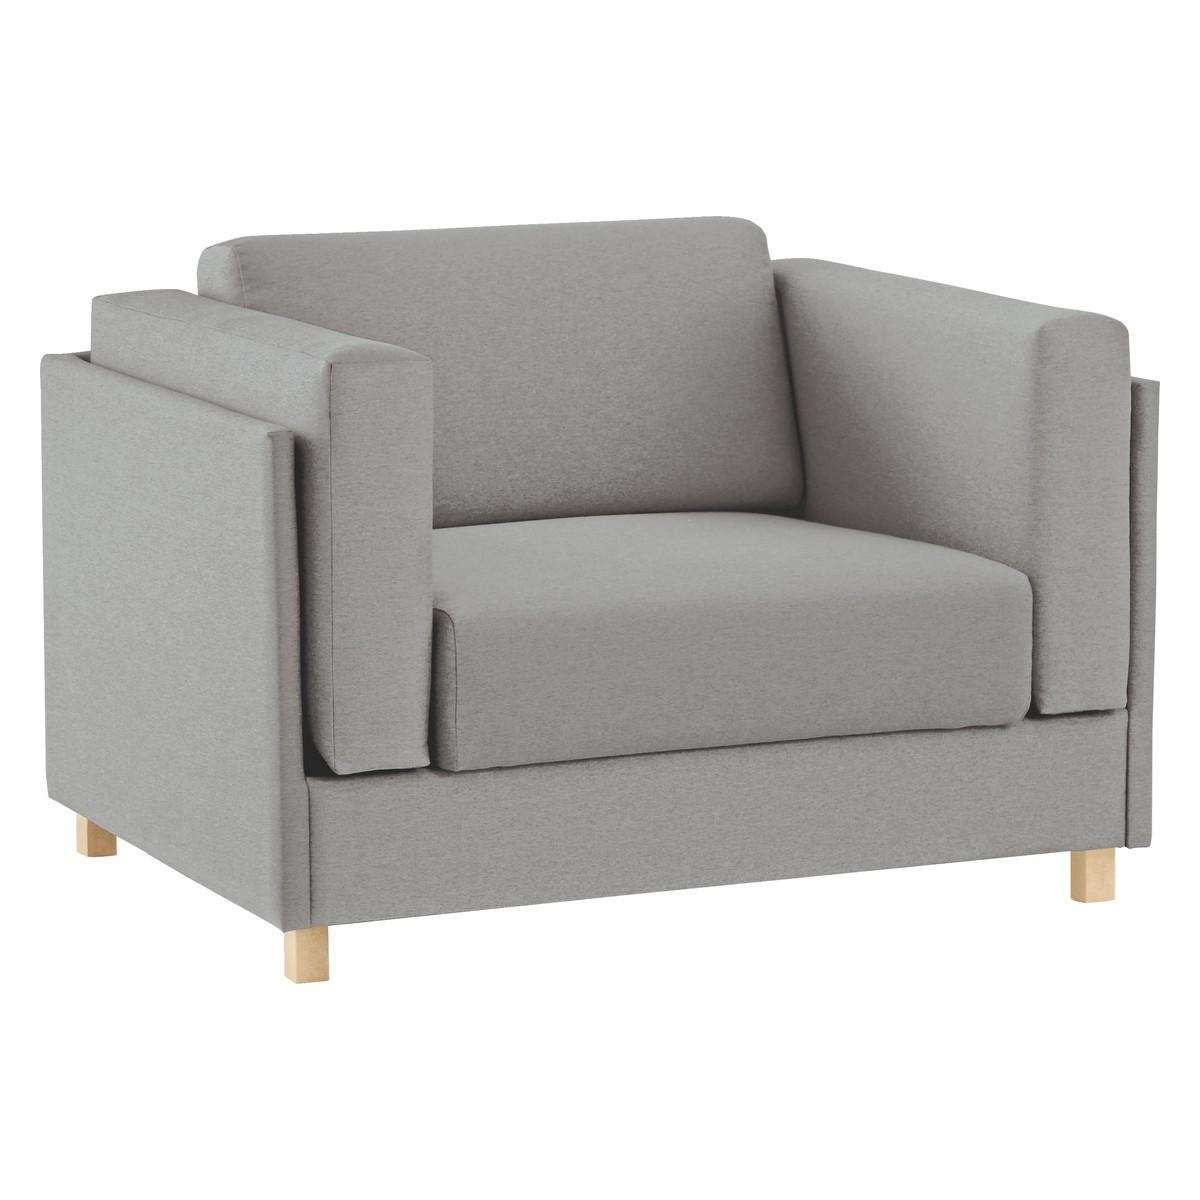 Thompson Sofa Bed – Leather Sectional Sofa With Single Chair Sofa Bed (Image 19 of 20)